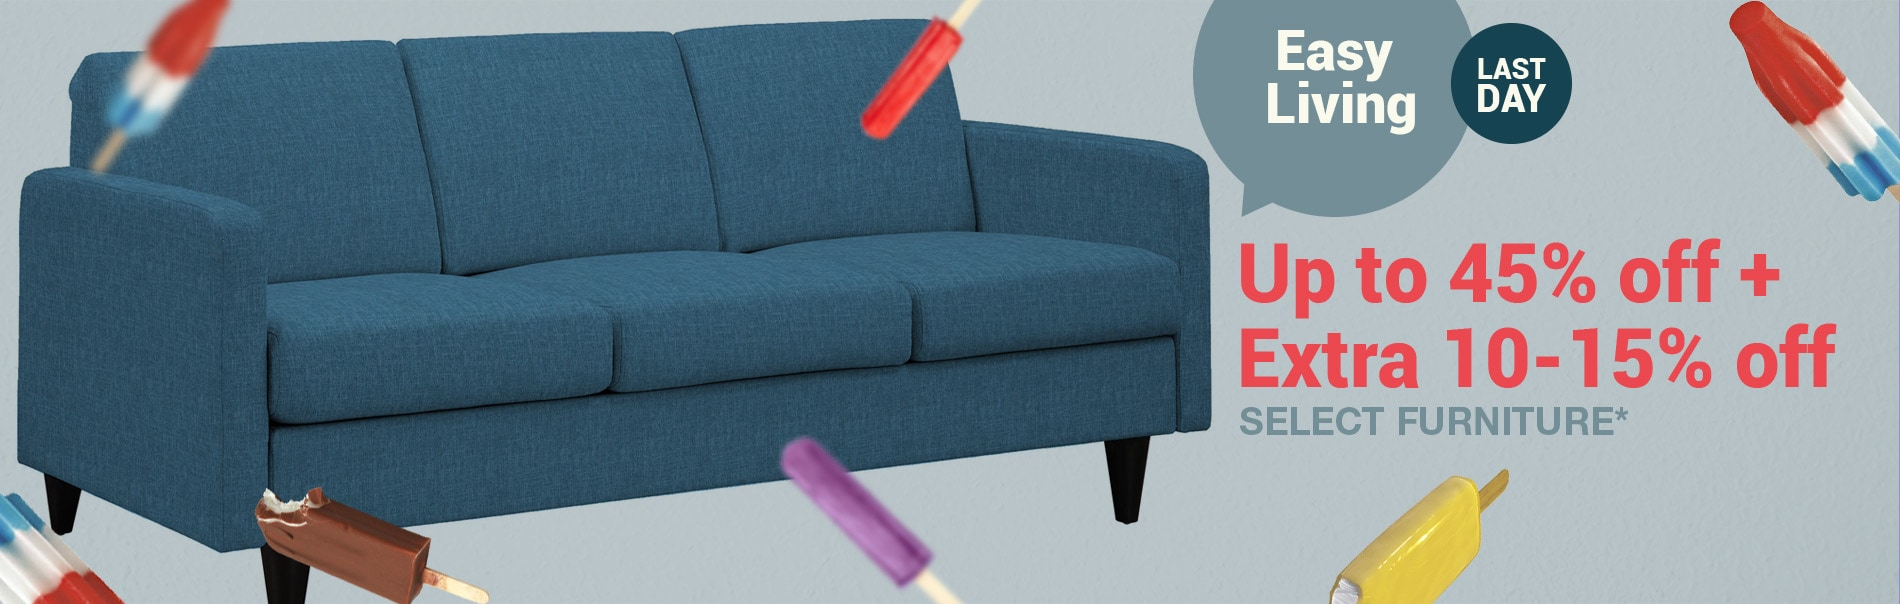 Last Day - Easy Living - Up to 45% Off + Extra 10% Off Select Furniture*